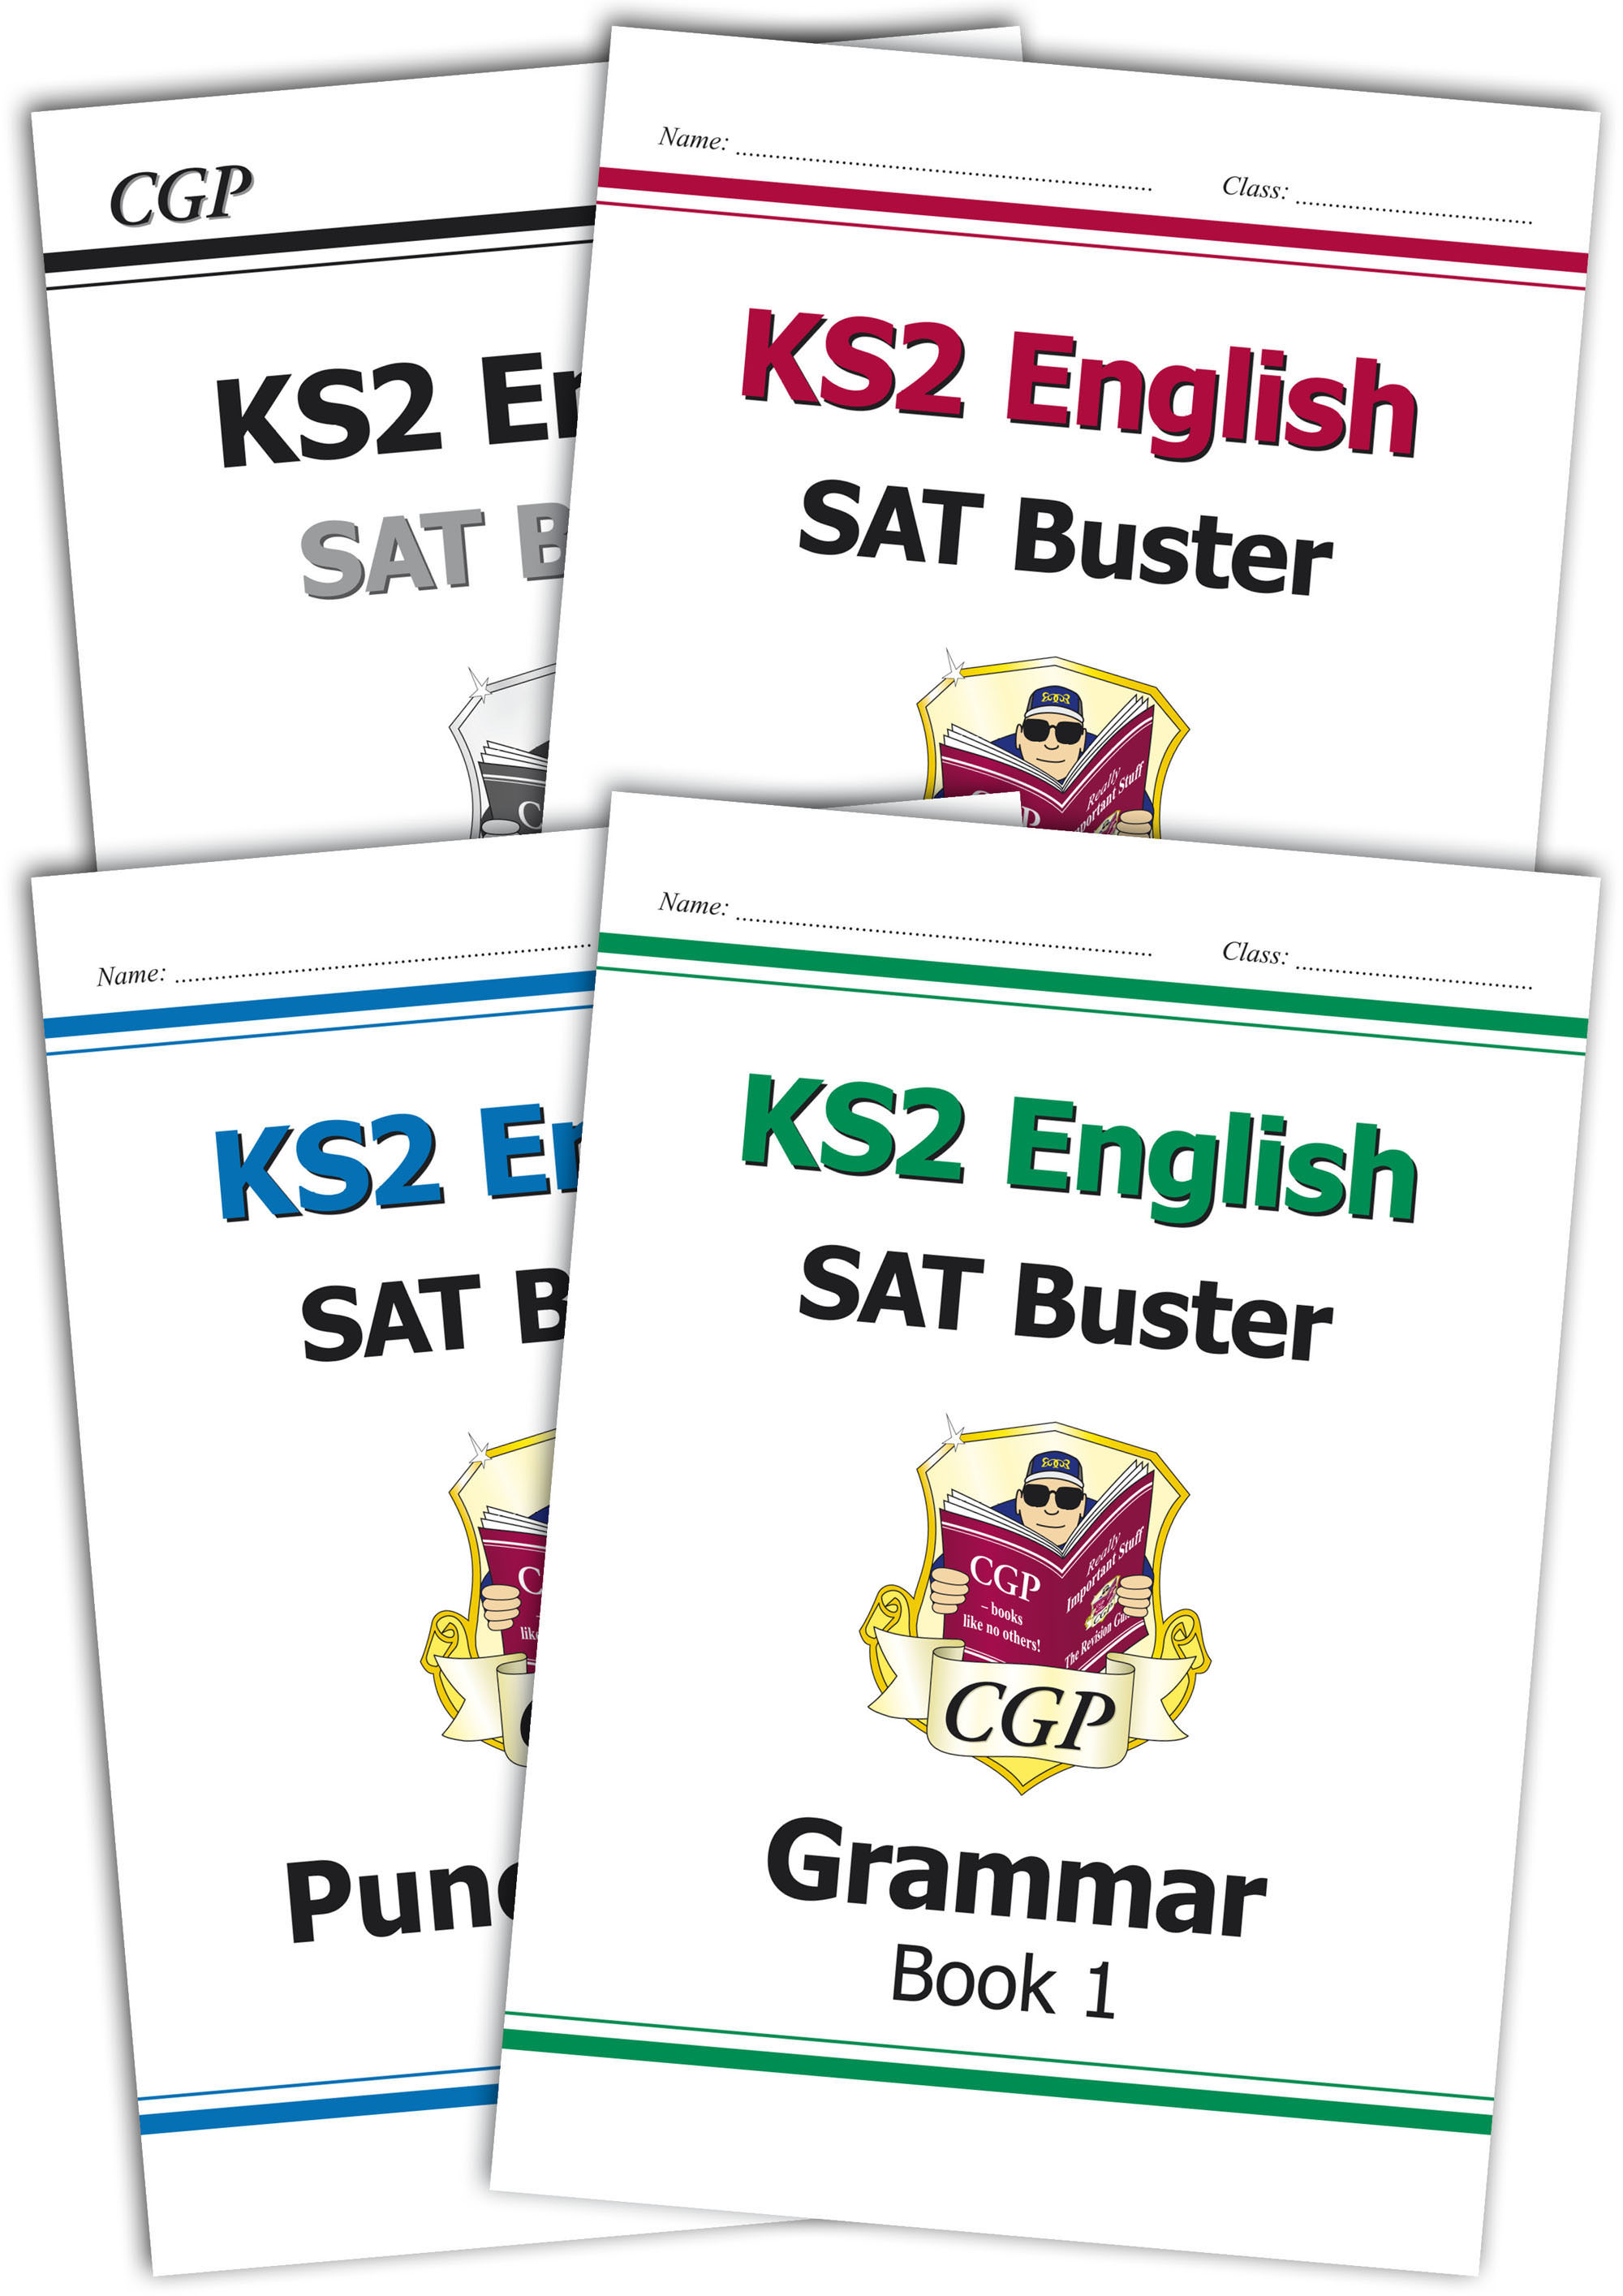 E6SBB23 - The Complete KS2 English SPaG SAT Buster Book 1 Bundle - incl answers (for tests in 2018 a